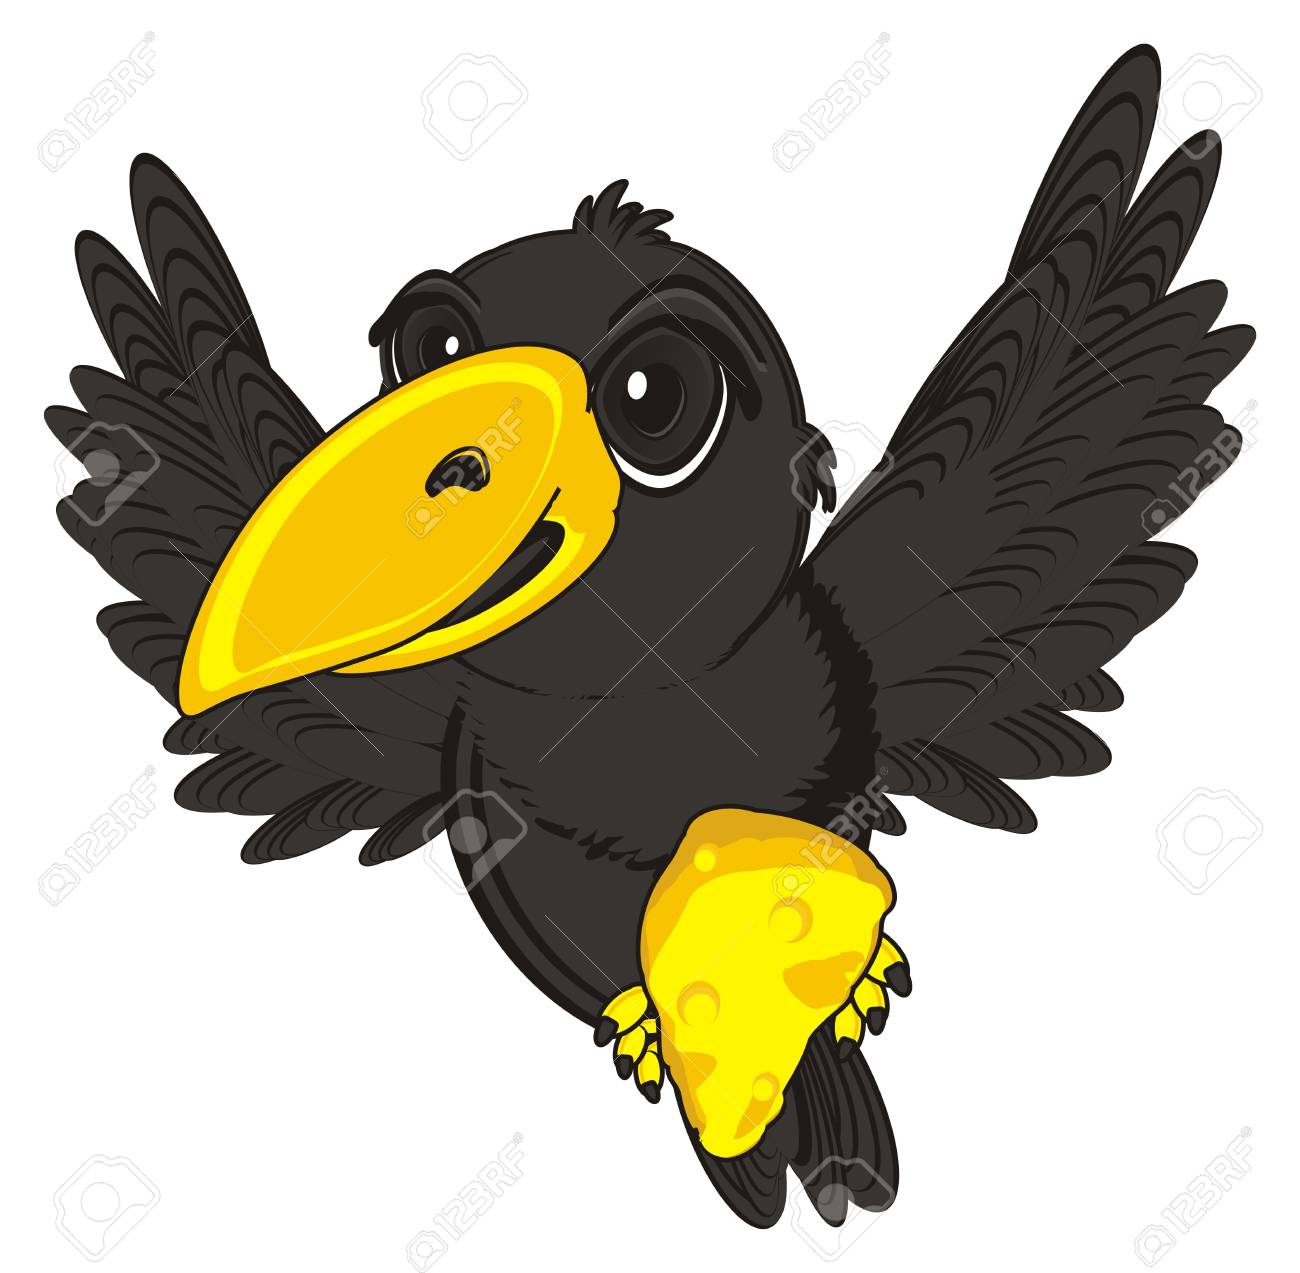 Crow clipart cheese clipart. Free download clip art